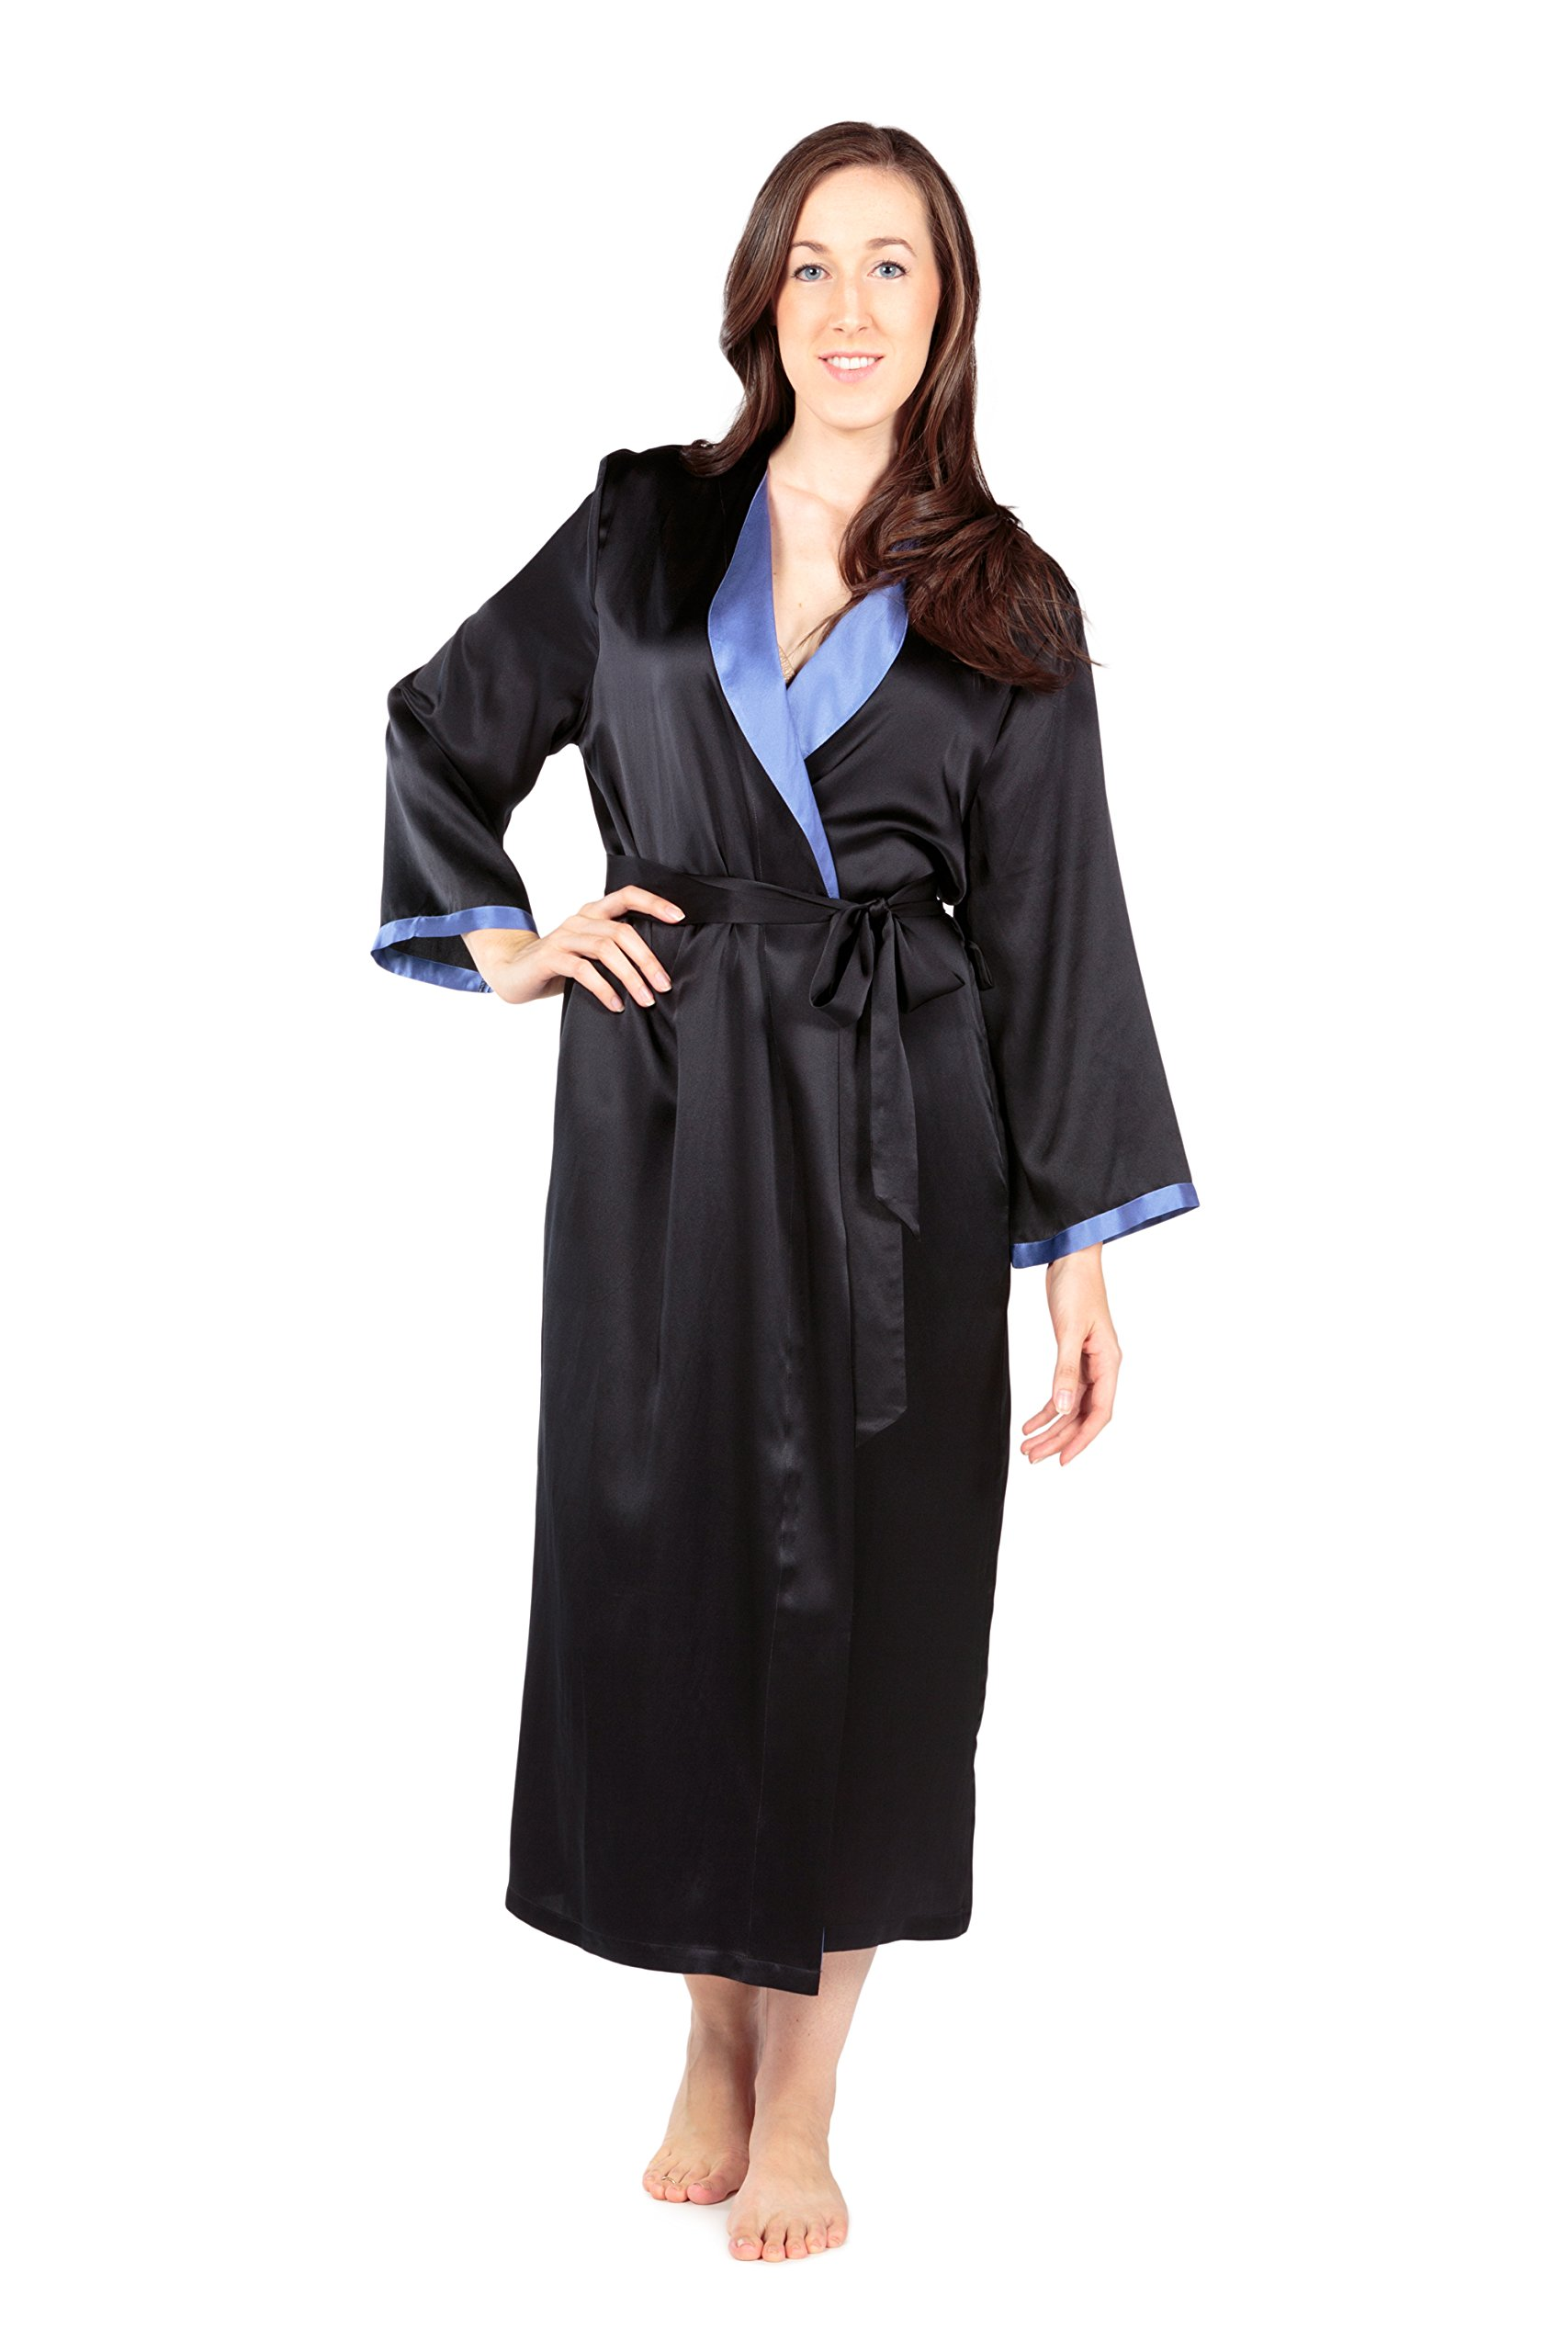 Women's Luxury Long Silk Bathrobe - Sleepwear Robe by TexereSilk (Beautibliss, Black, Large/X-Large) Popular Gifts for Women WS0102-BLK-LXL by TexereSilk (Image #1)